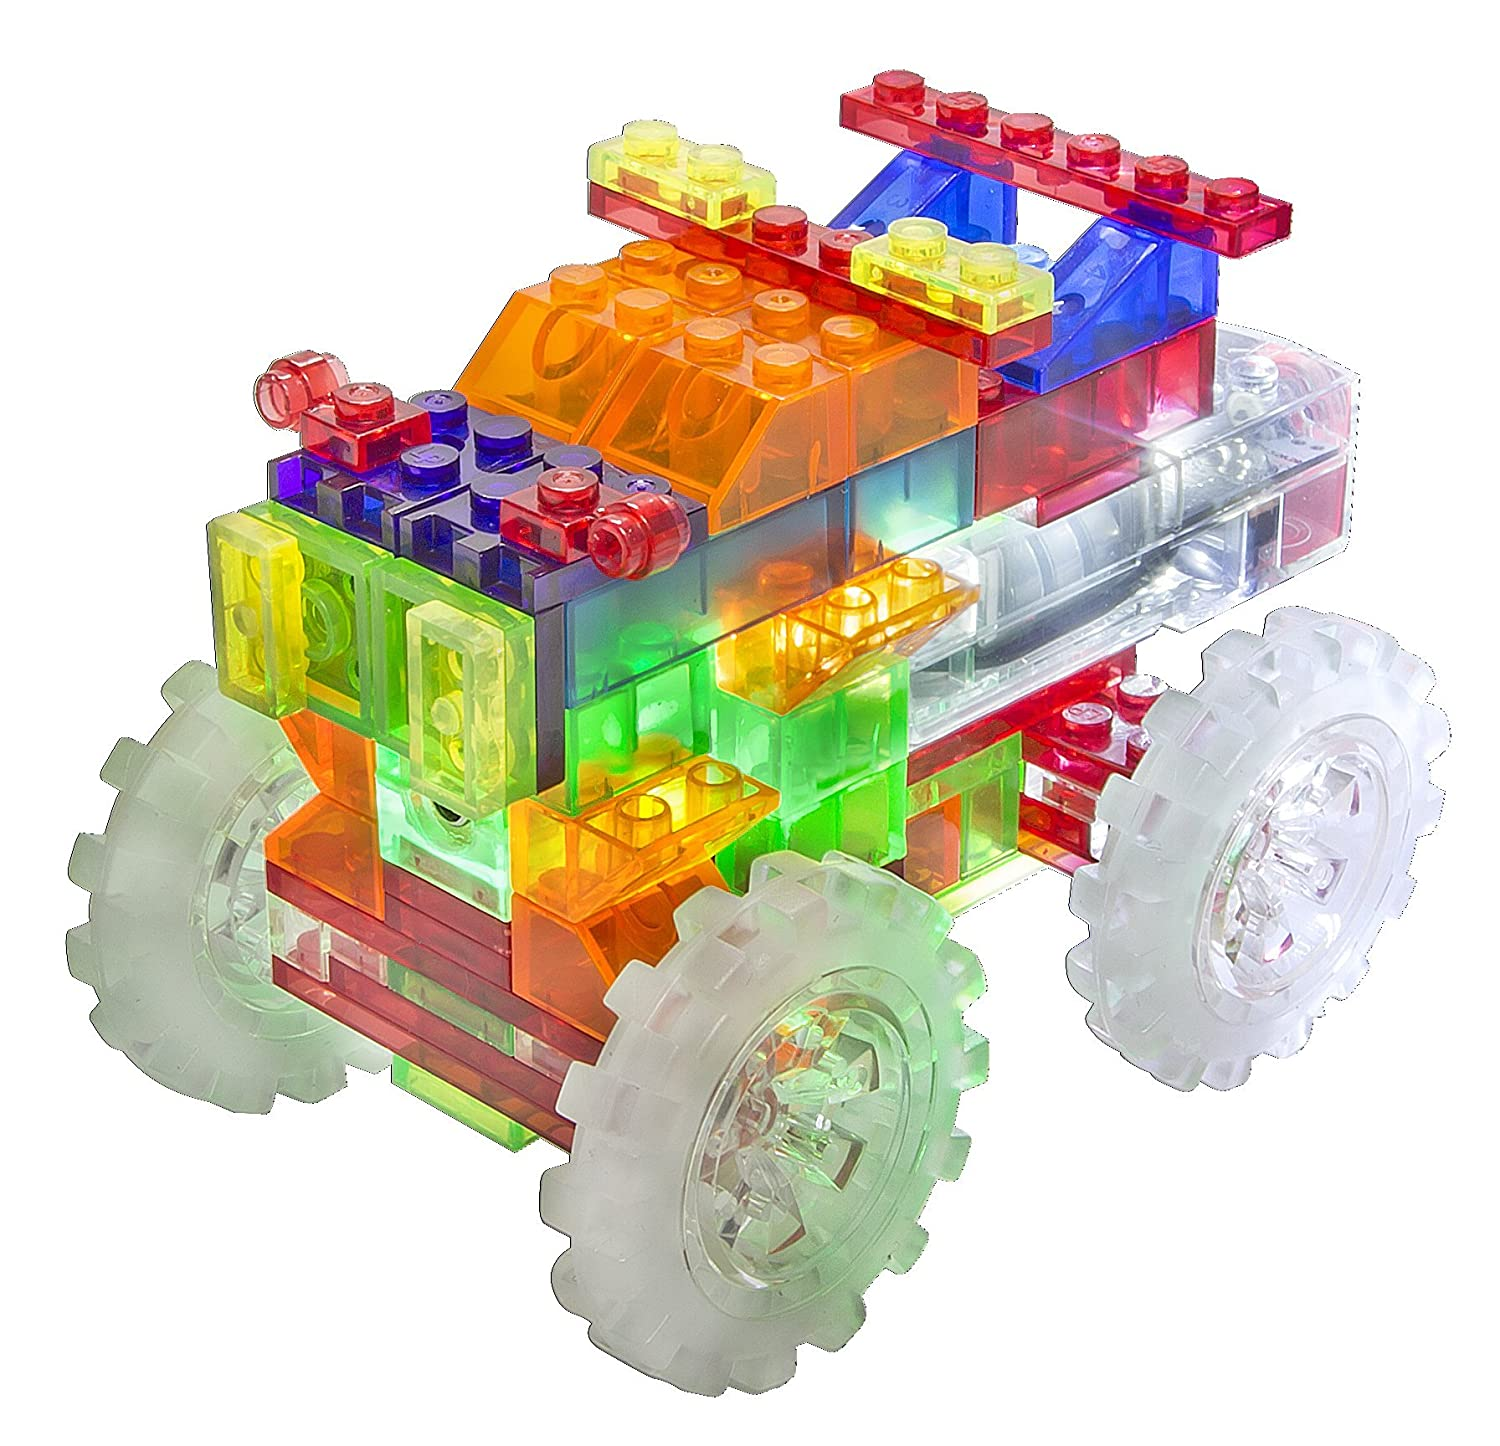 Amazon Laser Pegs 6 in 1 Monster Truck Building Set Toys & Games